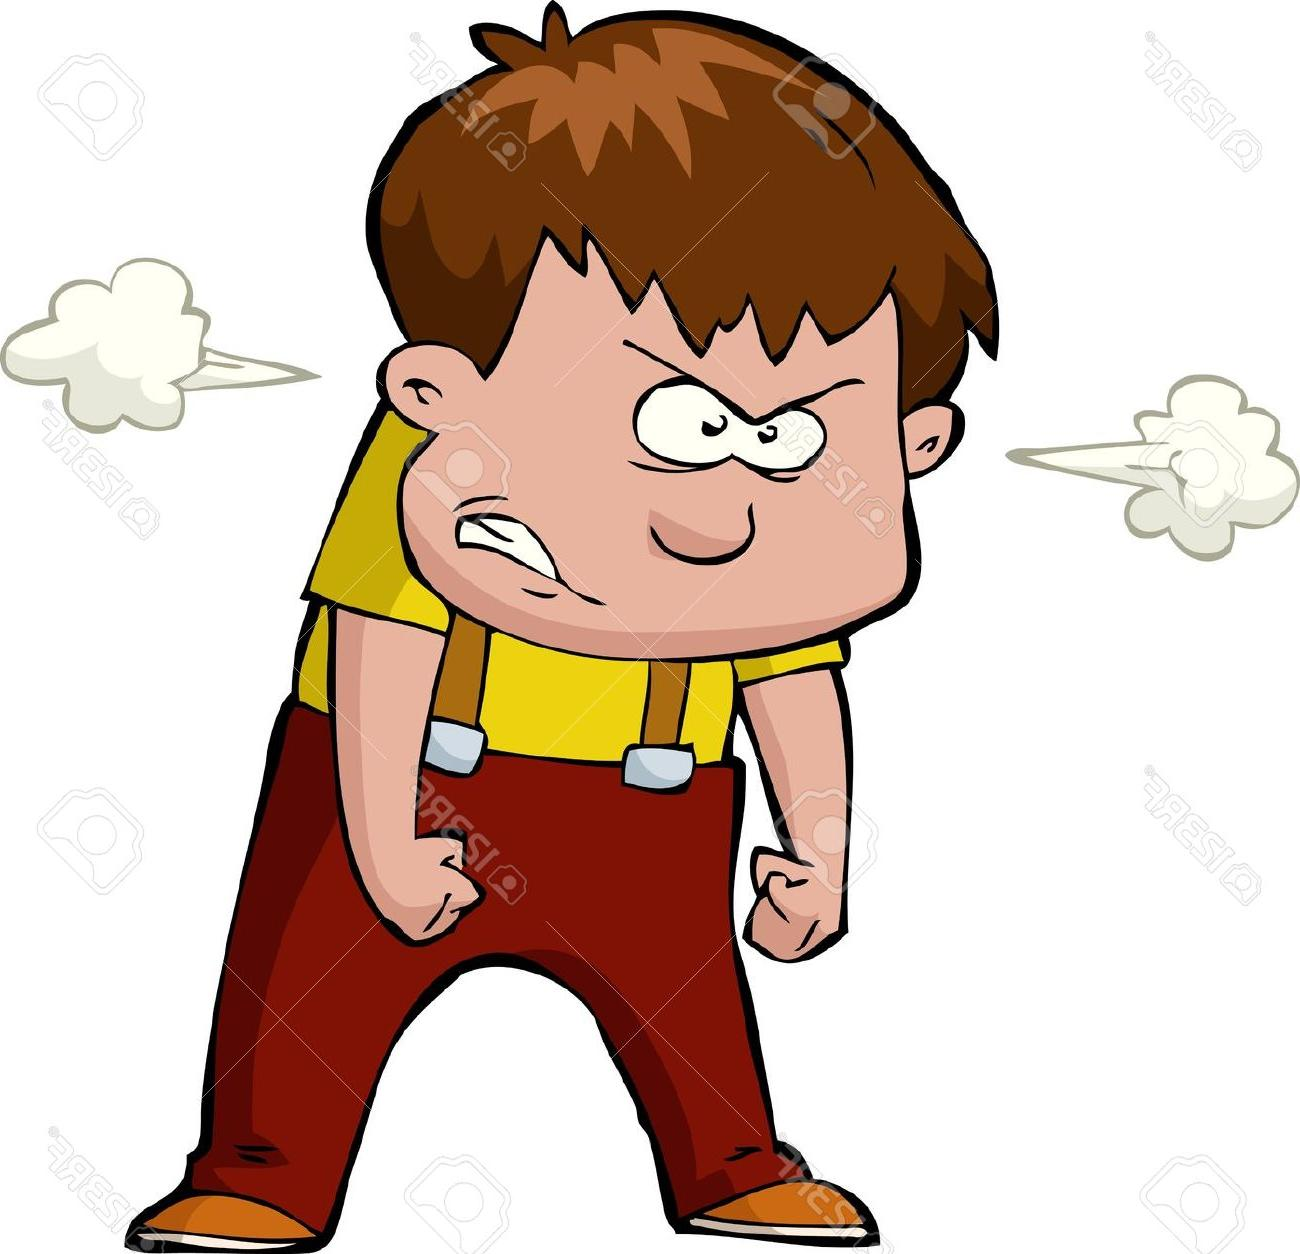 Mad clipart angry teenager. Anger kid